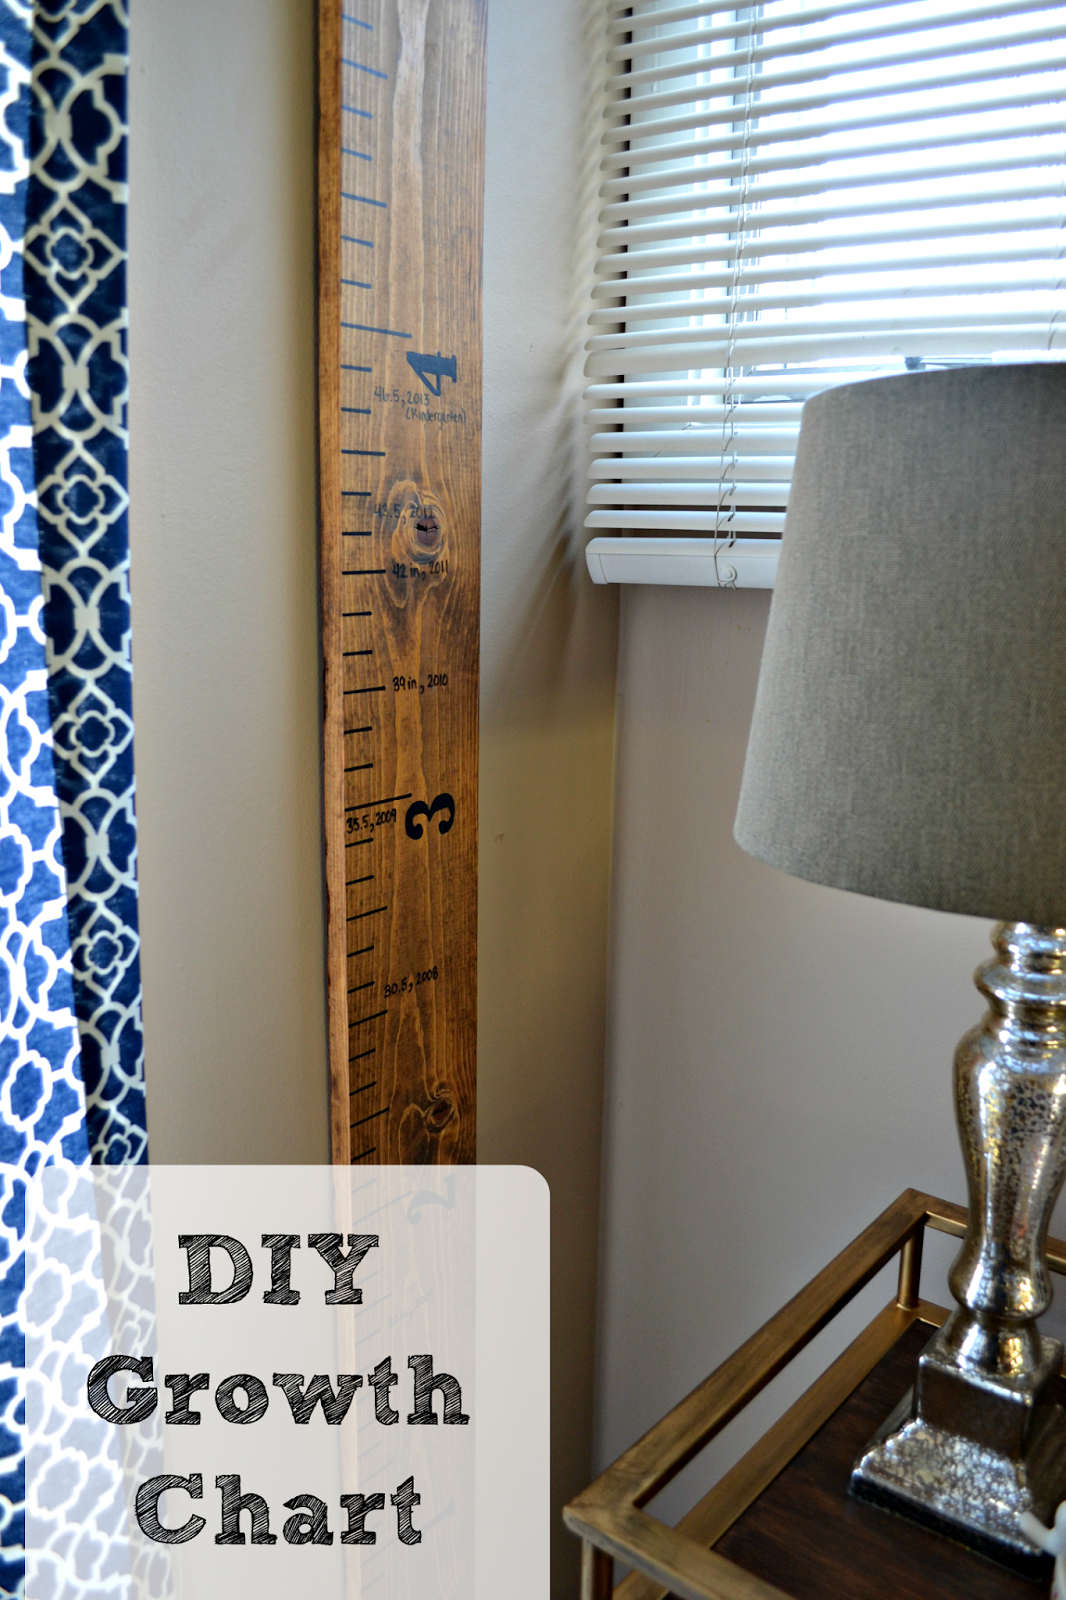 Diy giant ruler growth chart simple quick and inexpensive at